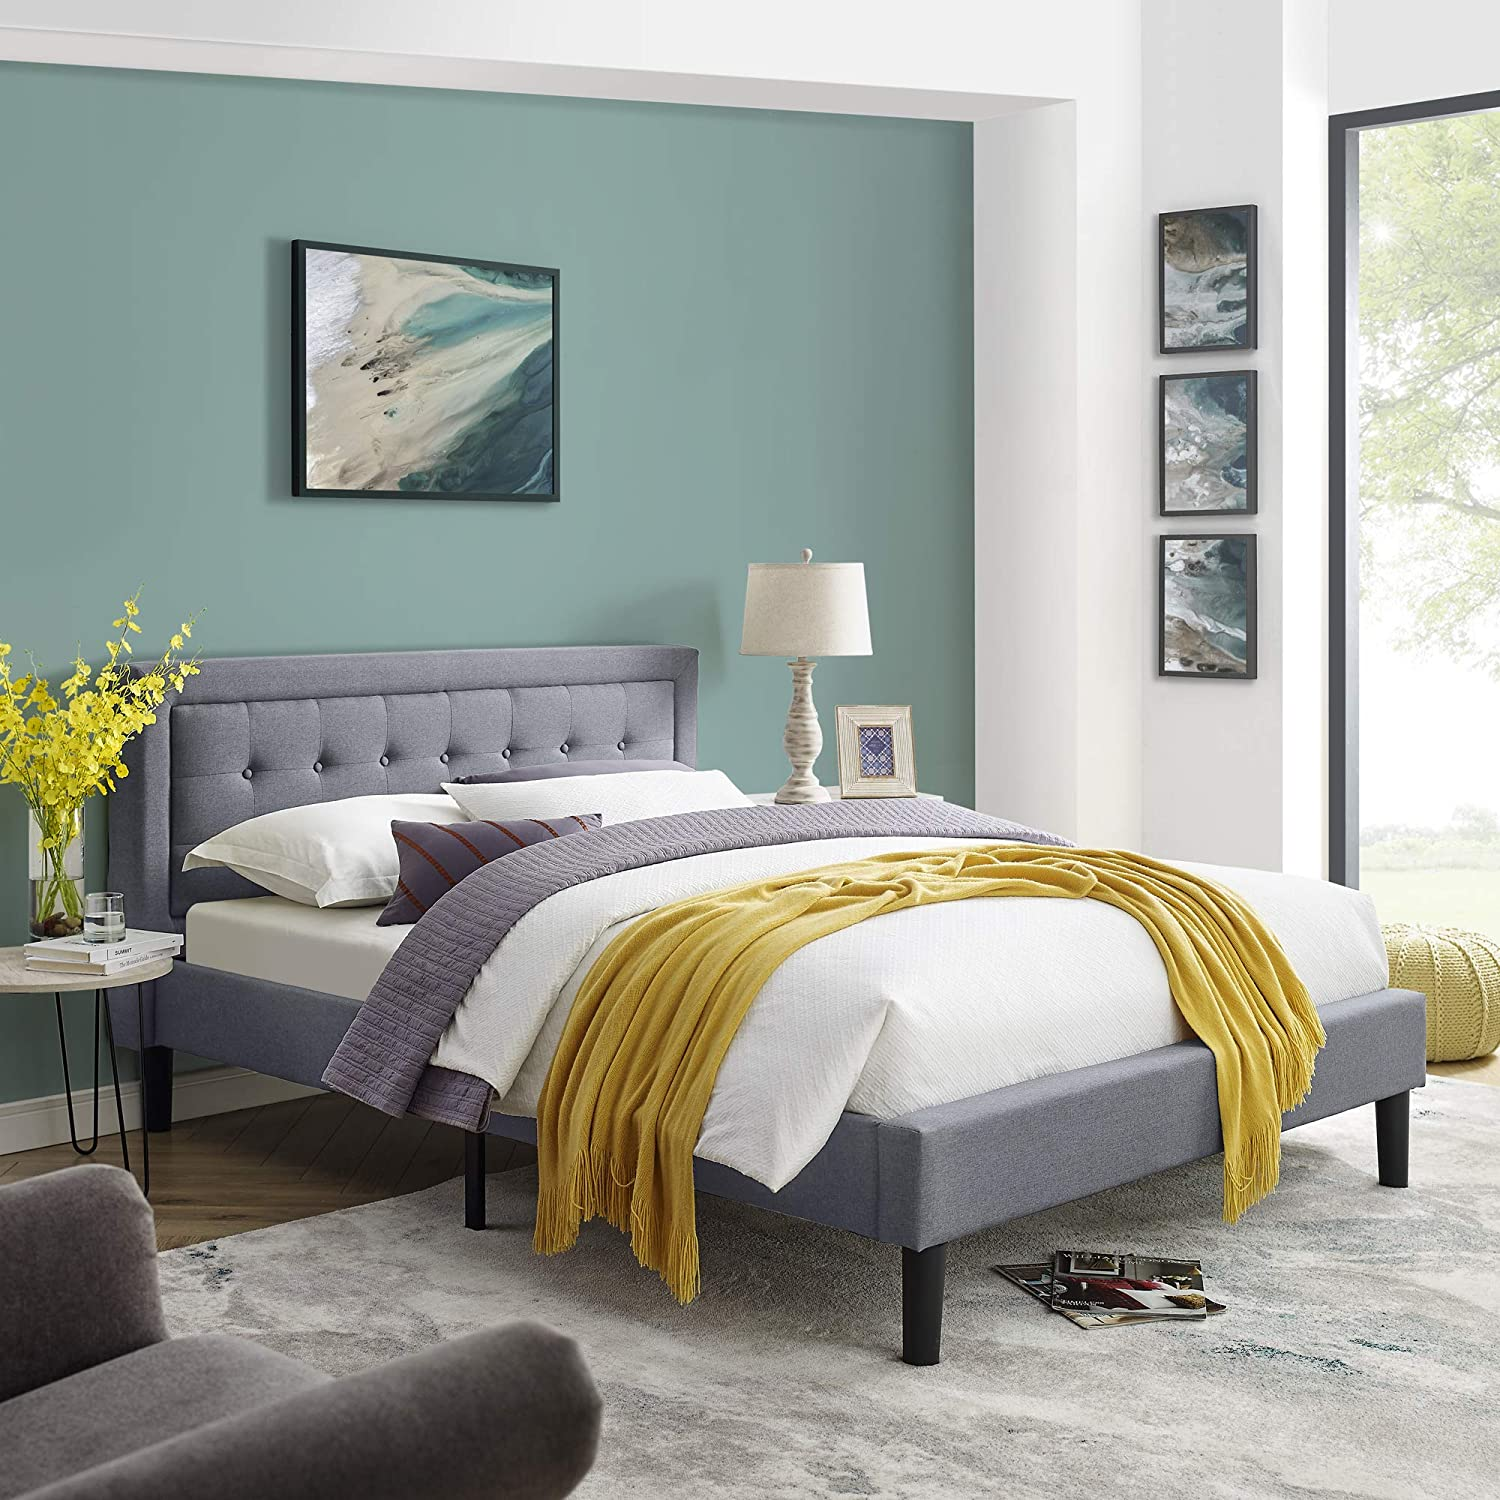 Mornington Upholstered Platform Bed Headboard and Metal Frame with Wood Slat Support Grey, Queen